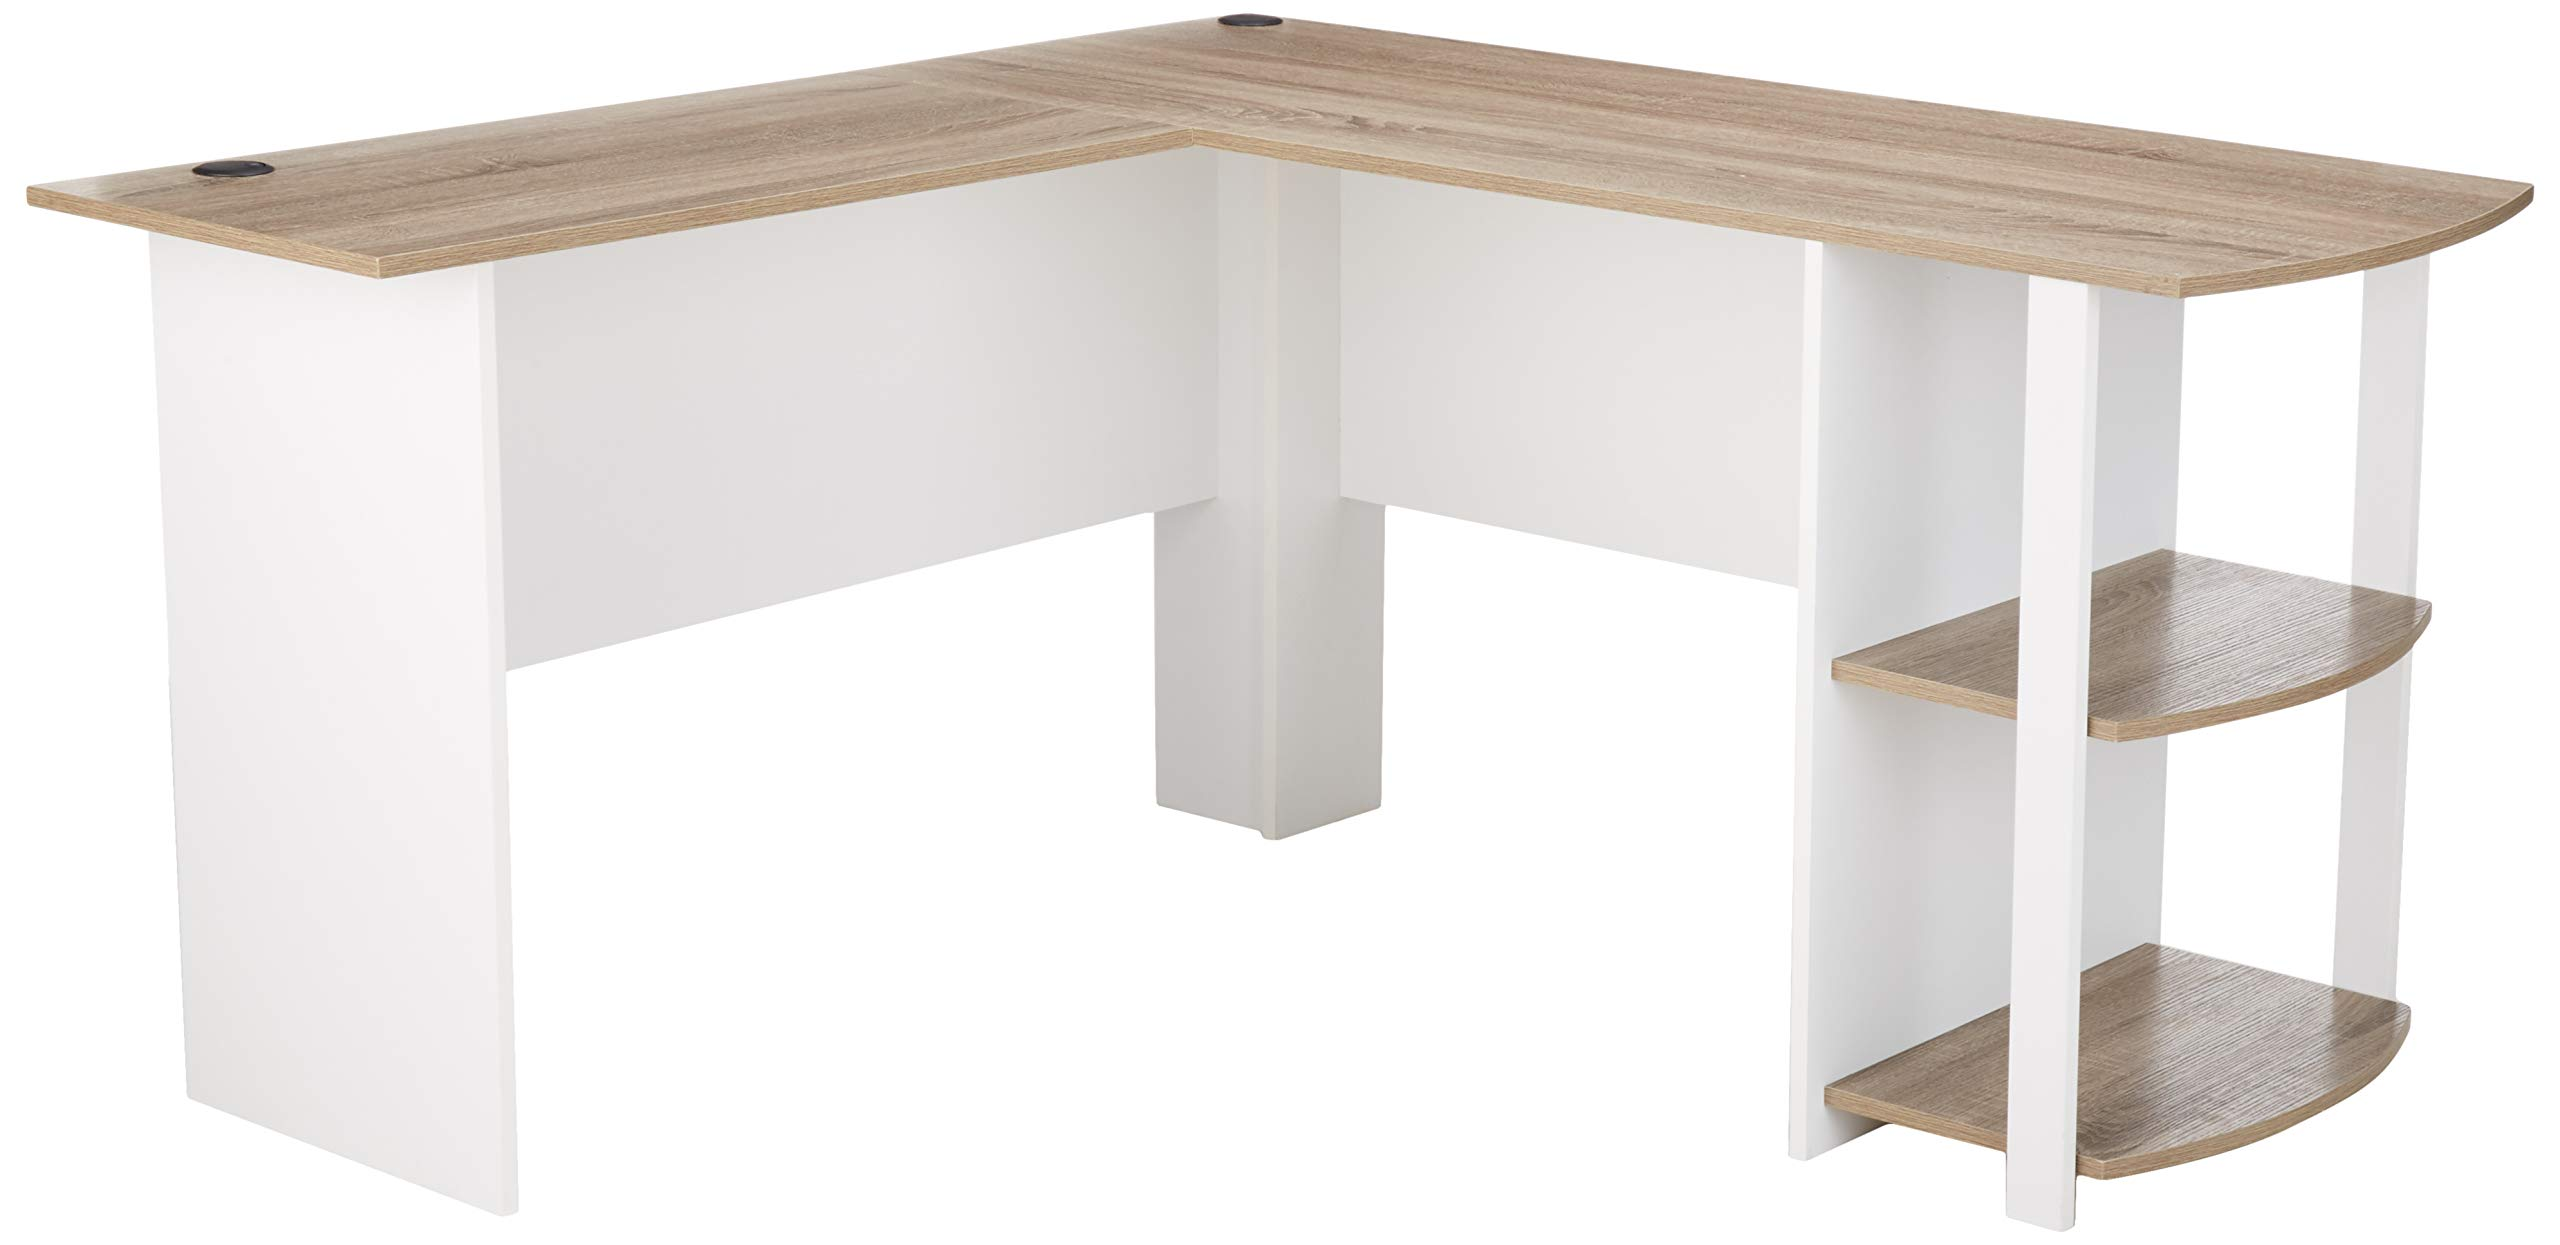 Ameriwood Home Dakota L-Shaped Desk with Bookshelves, White/ Sonoma Oak by Ameriwood Home